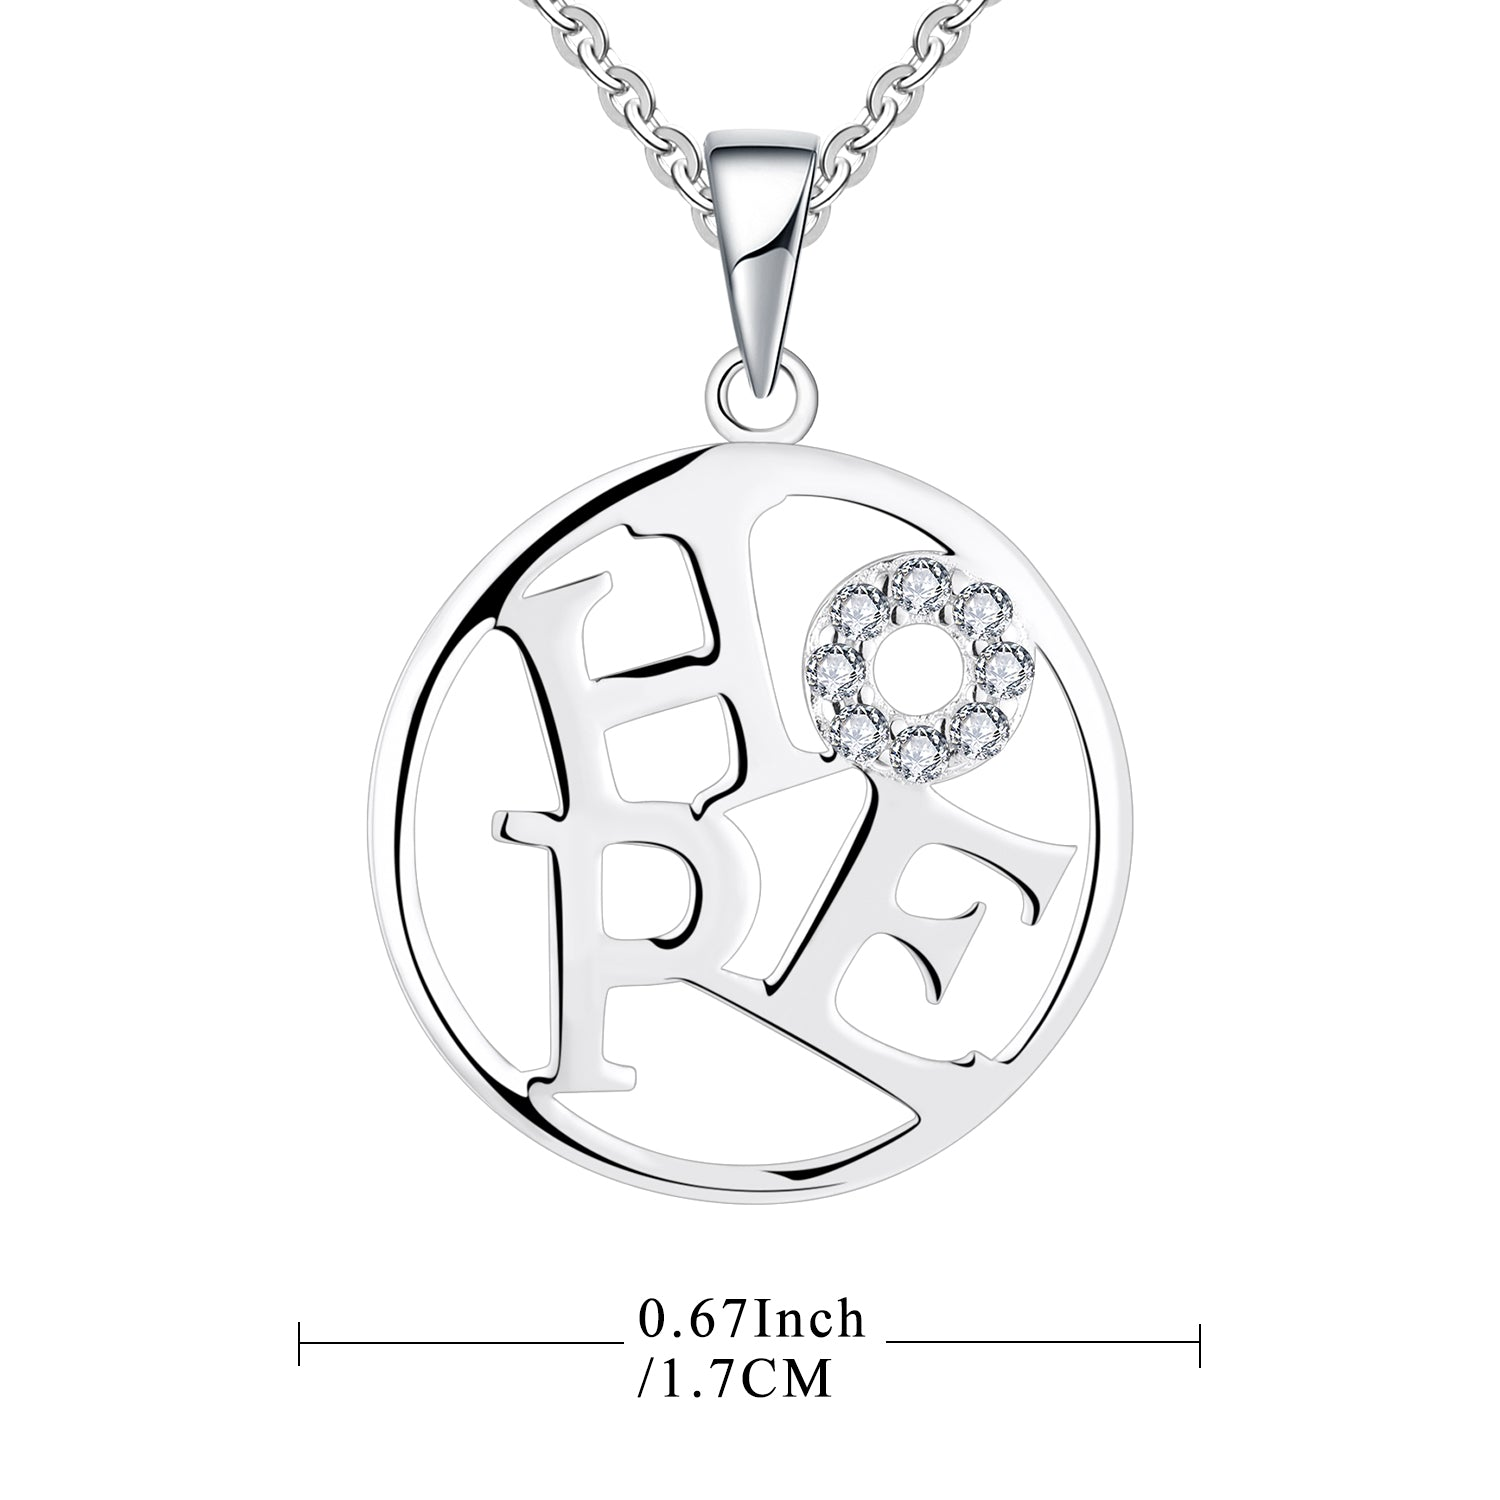 Farjary 925 Sterling Silver Round disc With HOPE Inside Pendant Necklace